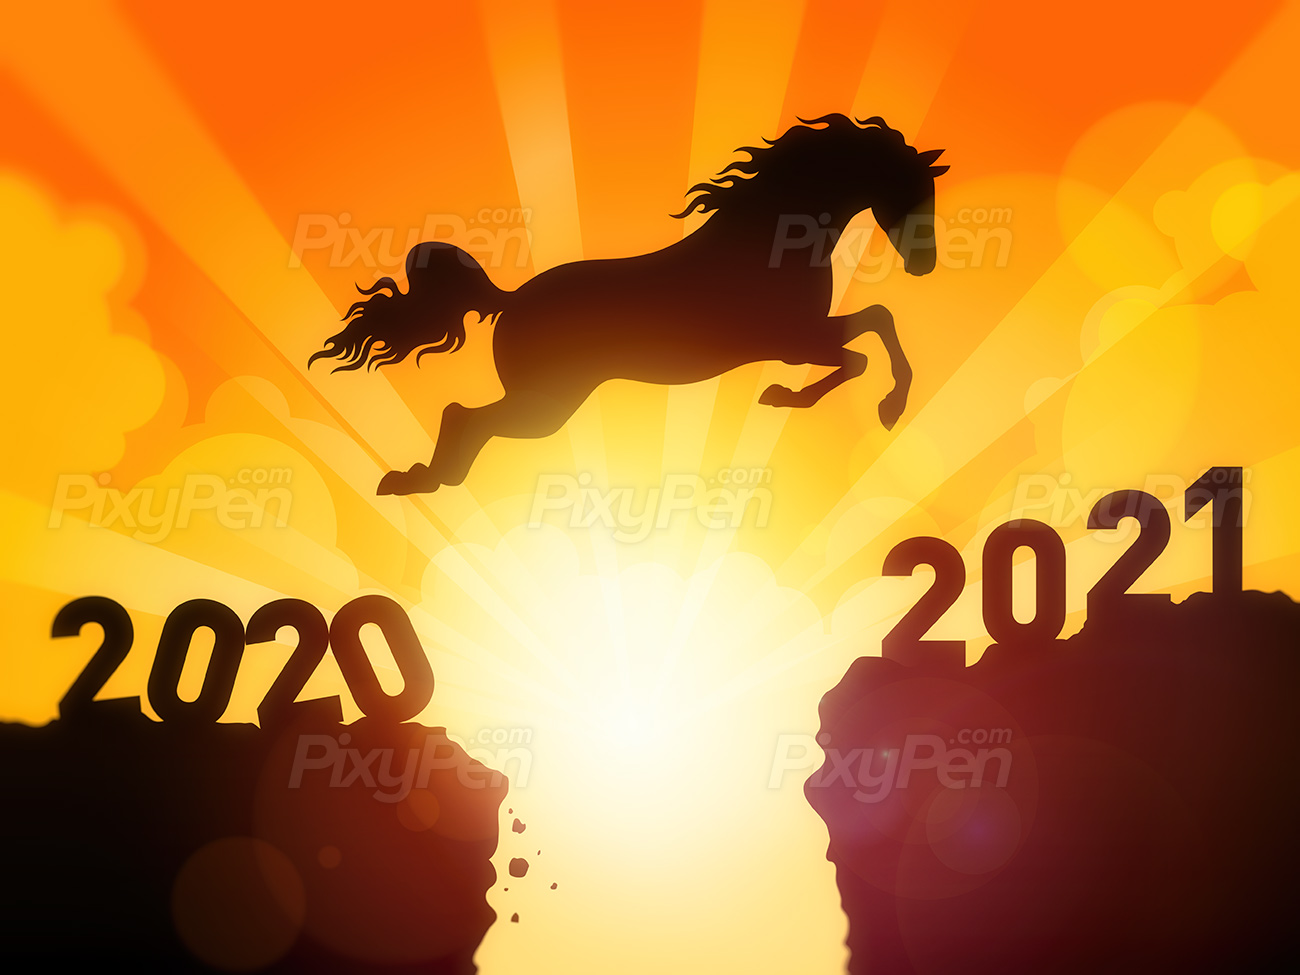 Happy New Year 2021 Images Wishes Greetings 14